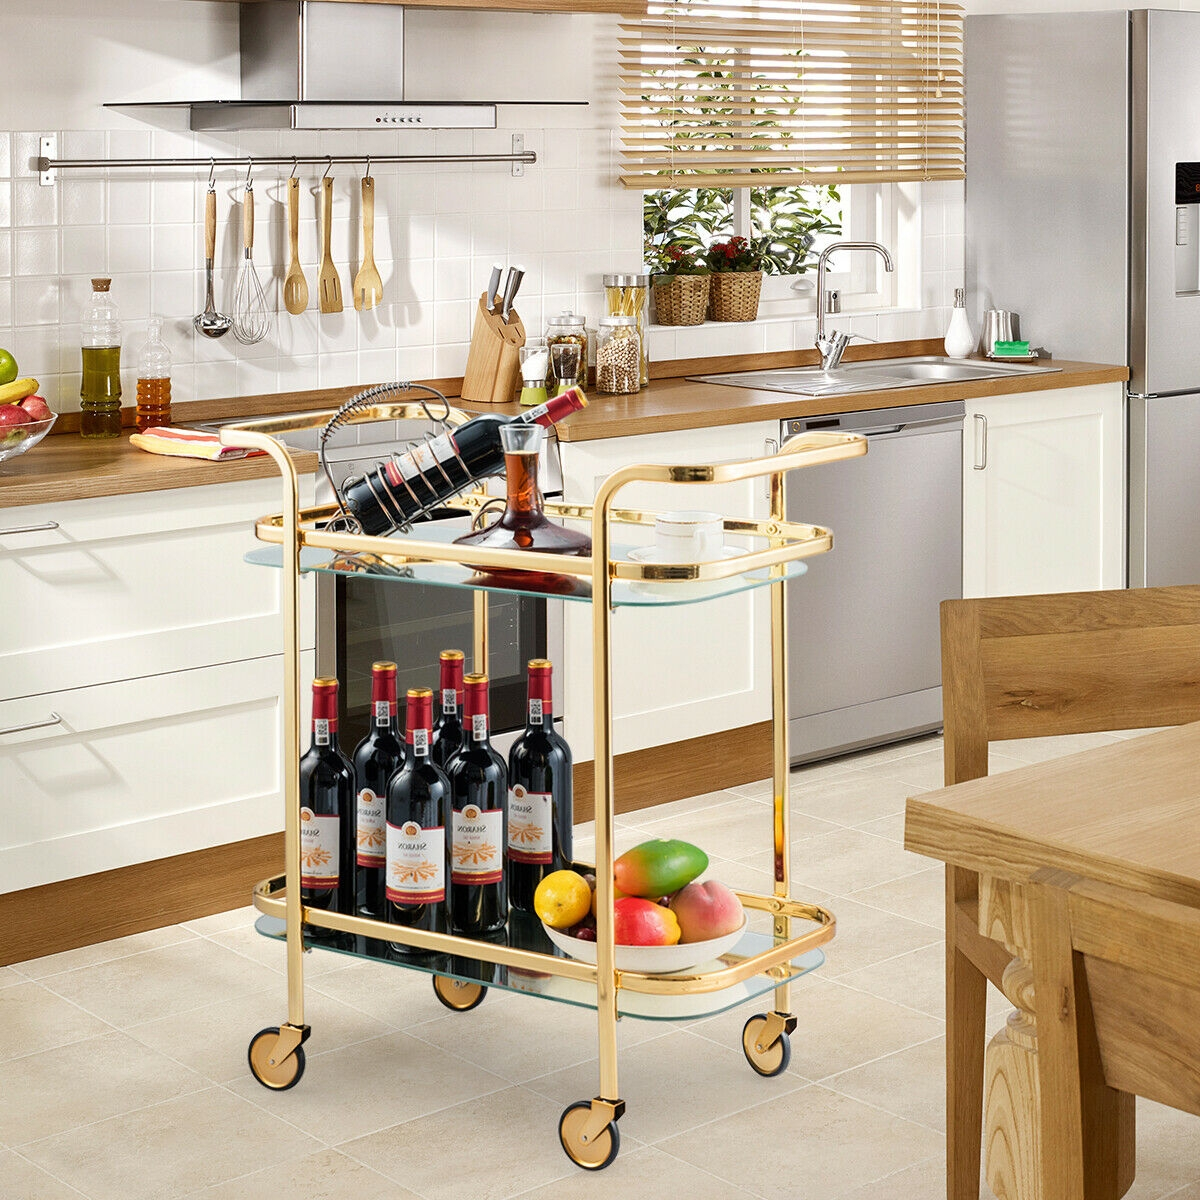 2 Tier Metal Frame Rolling Kitchen Cart with Glass Shelves